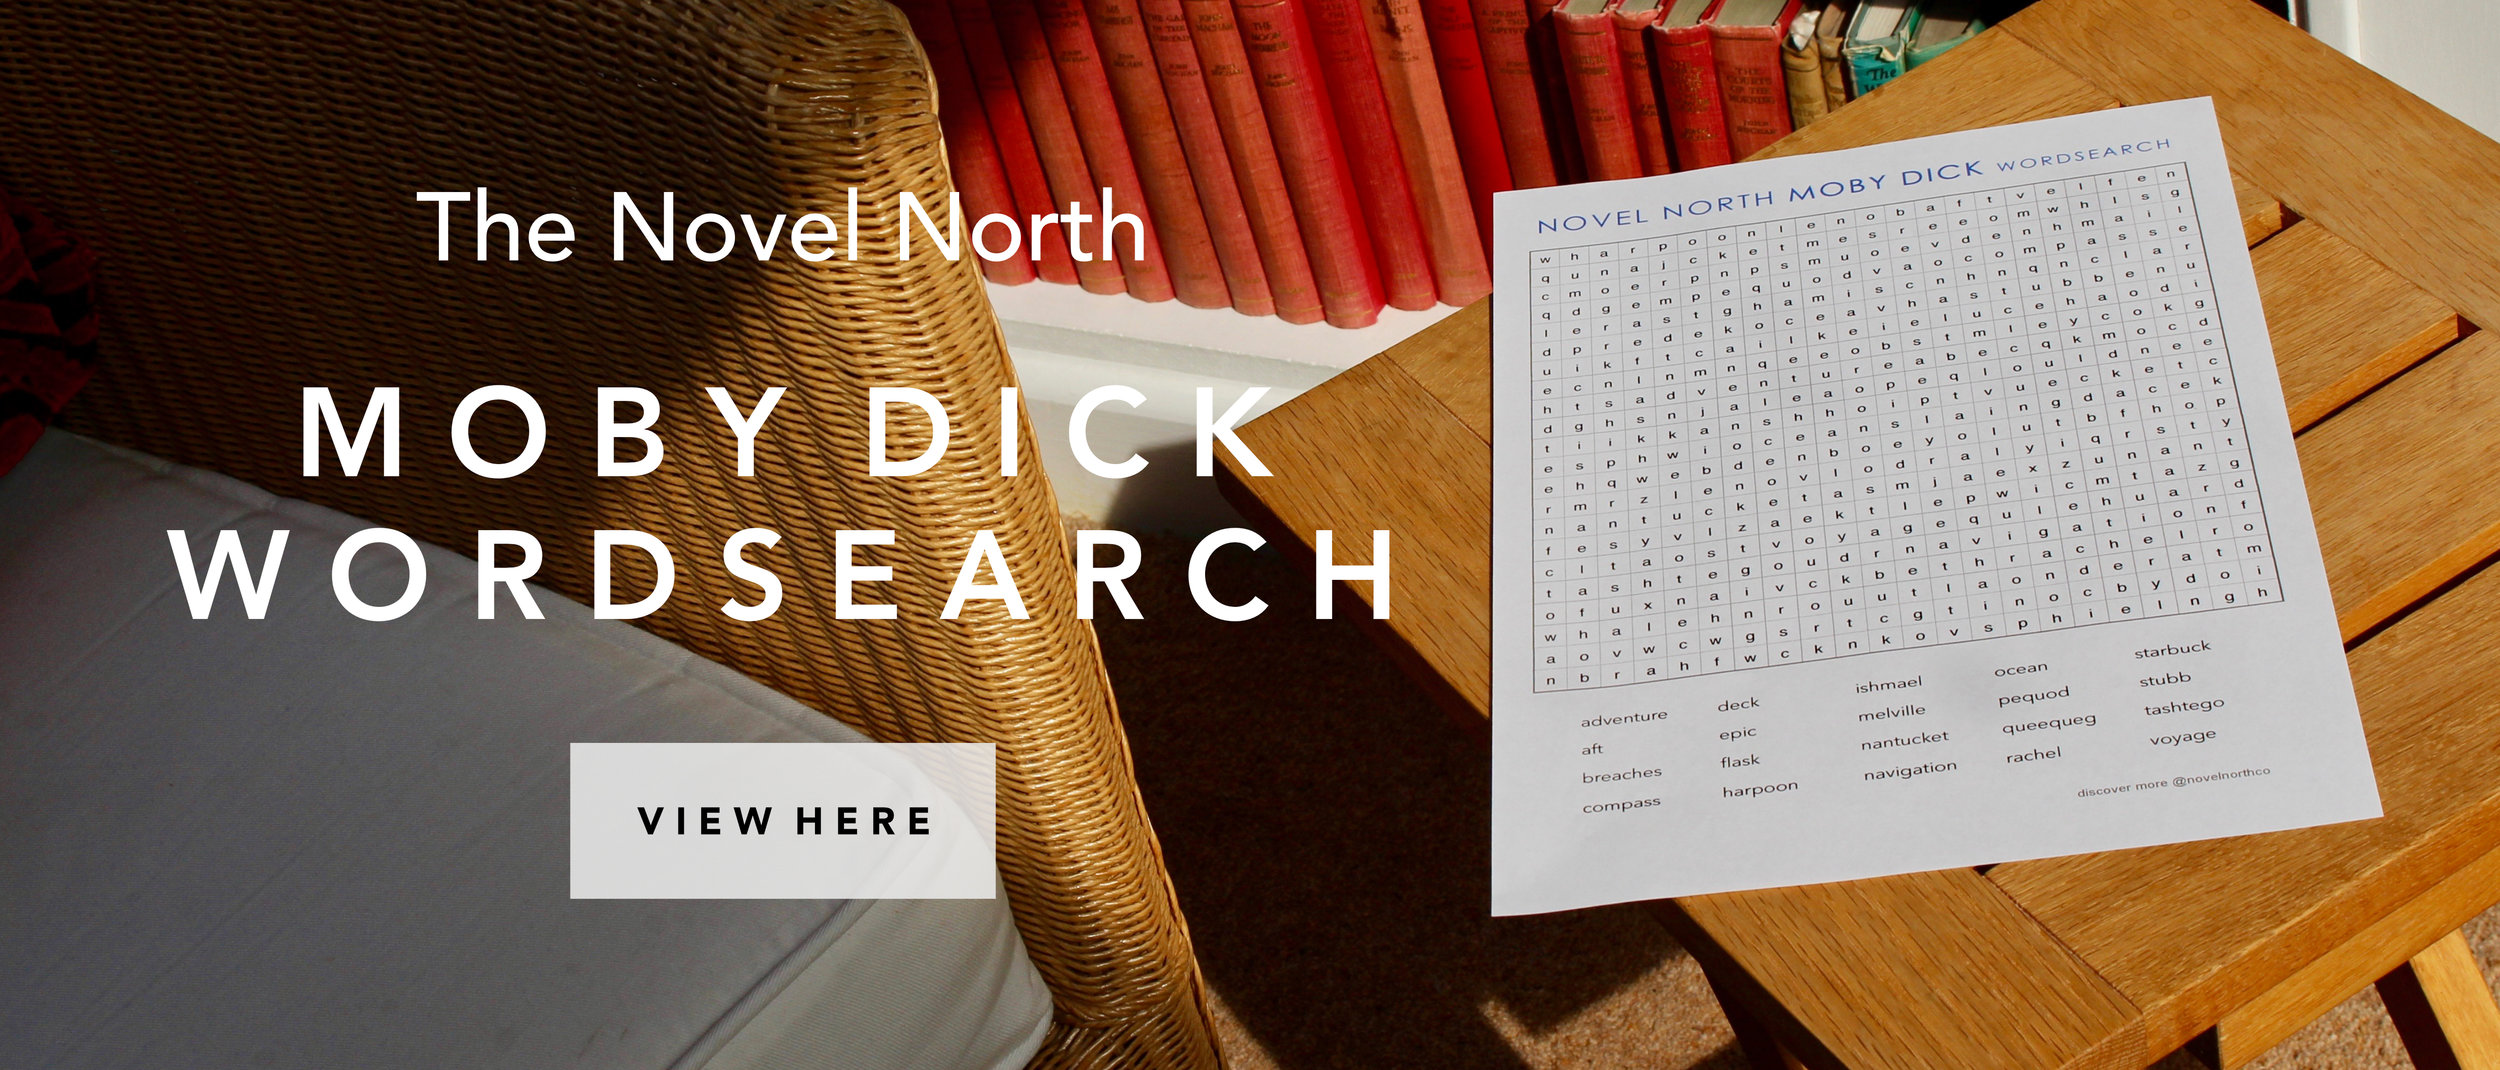 Moby Dick Wordsearch - Journal Banner.jpg